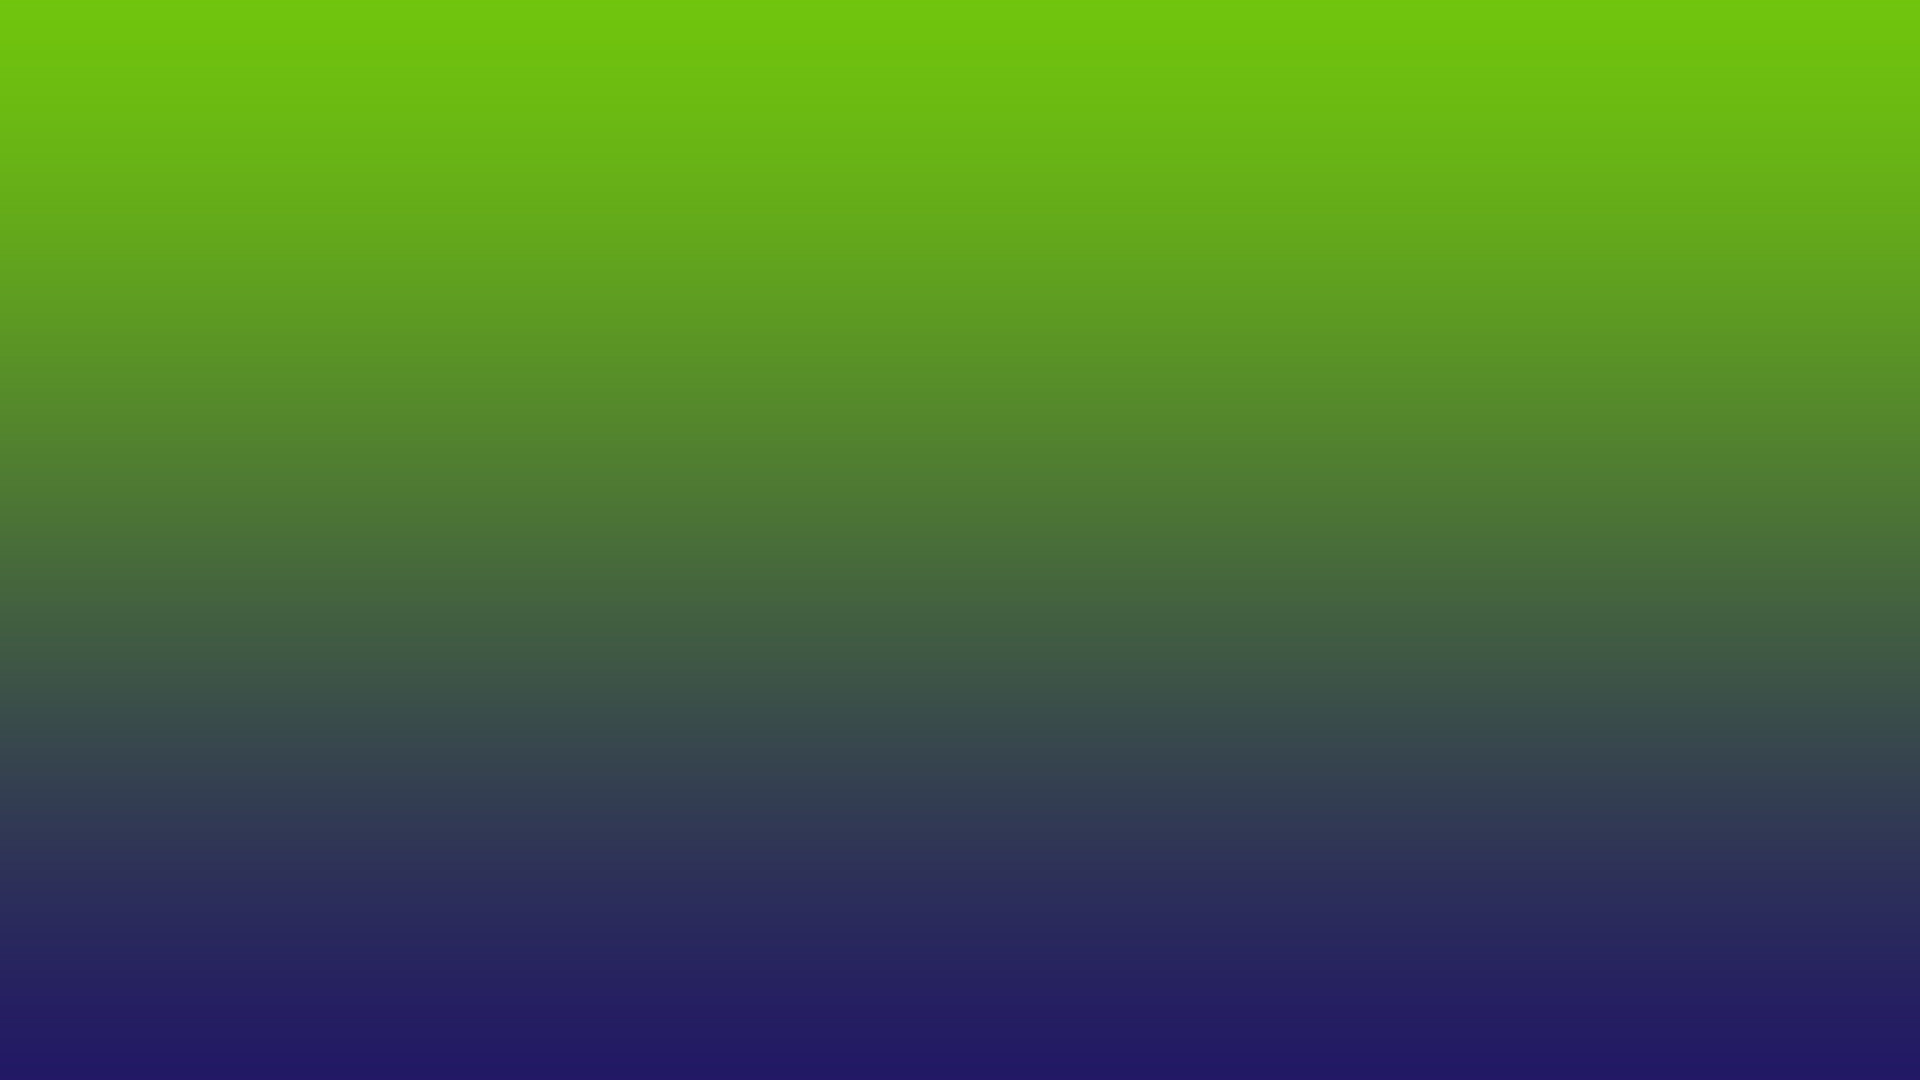 Res: 1920x1080, Green and Blue Gradient Wallpaper 63438